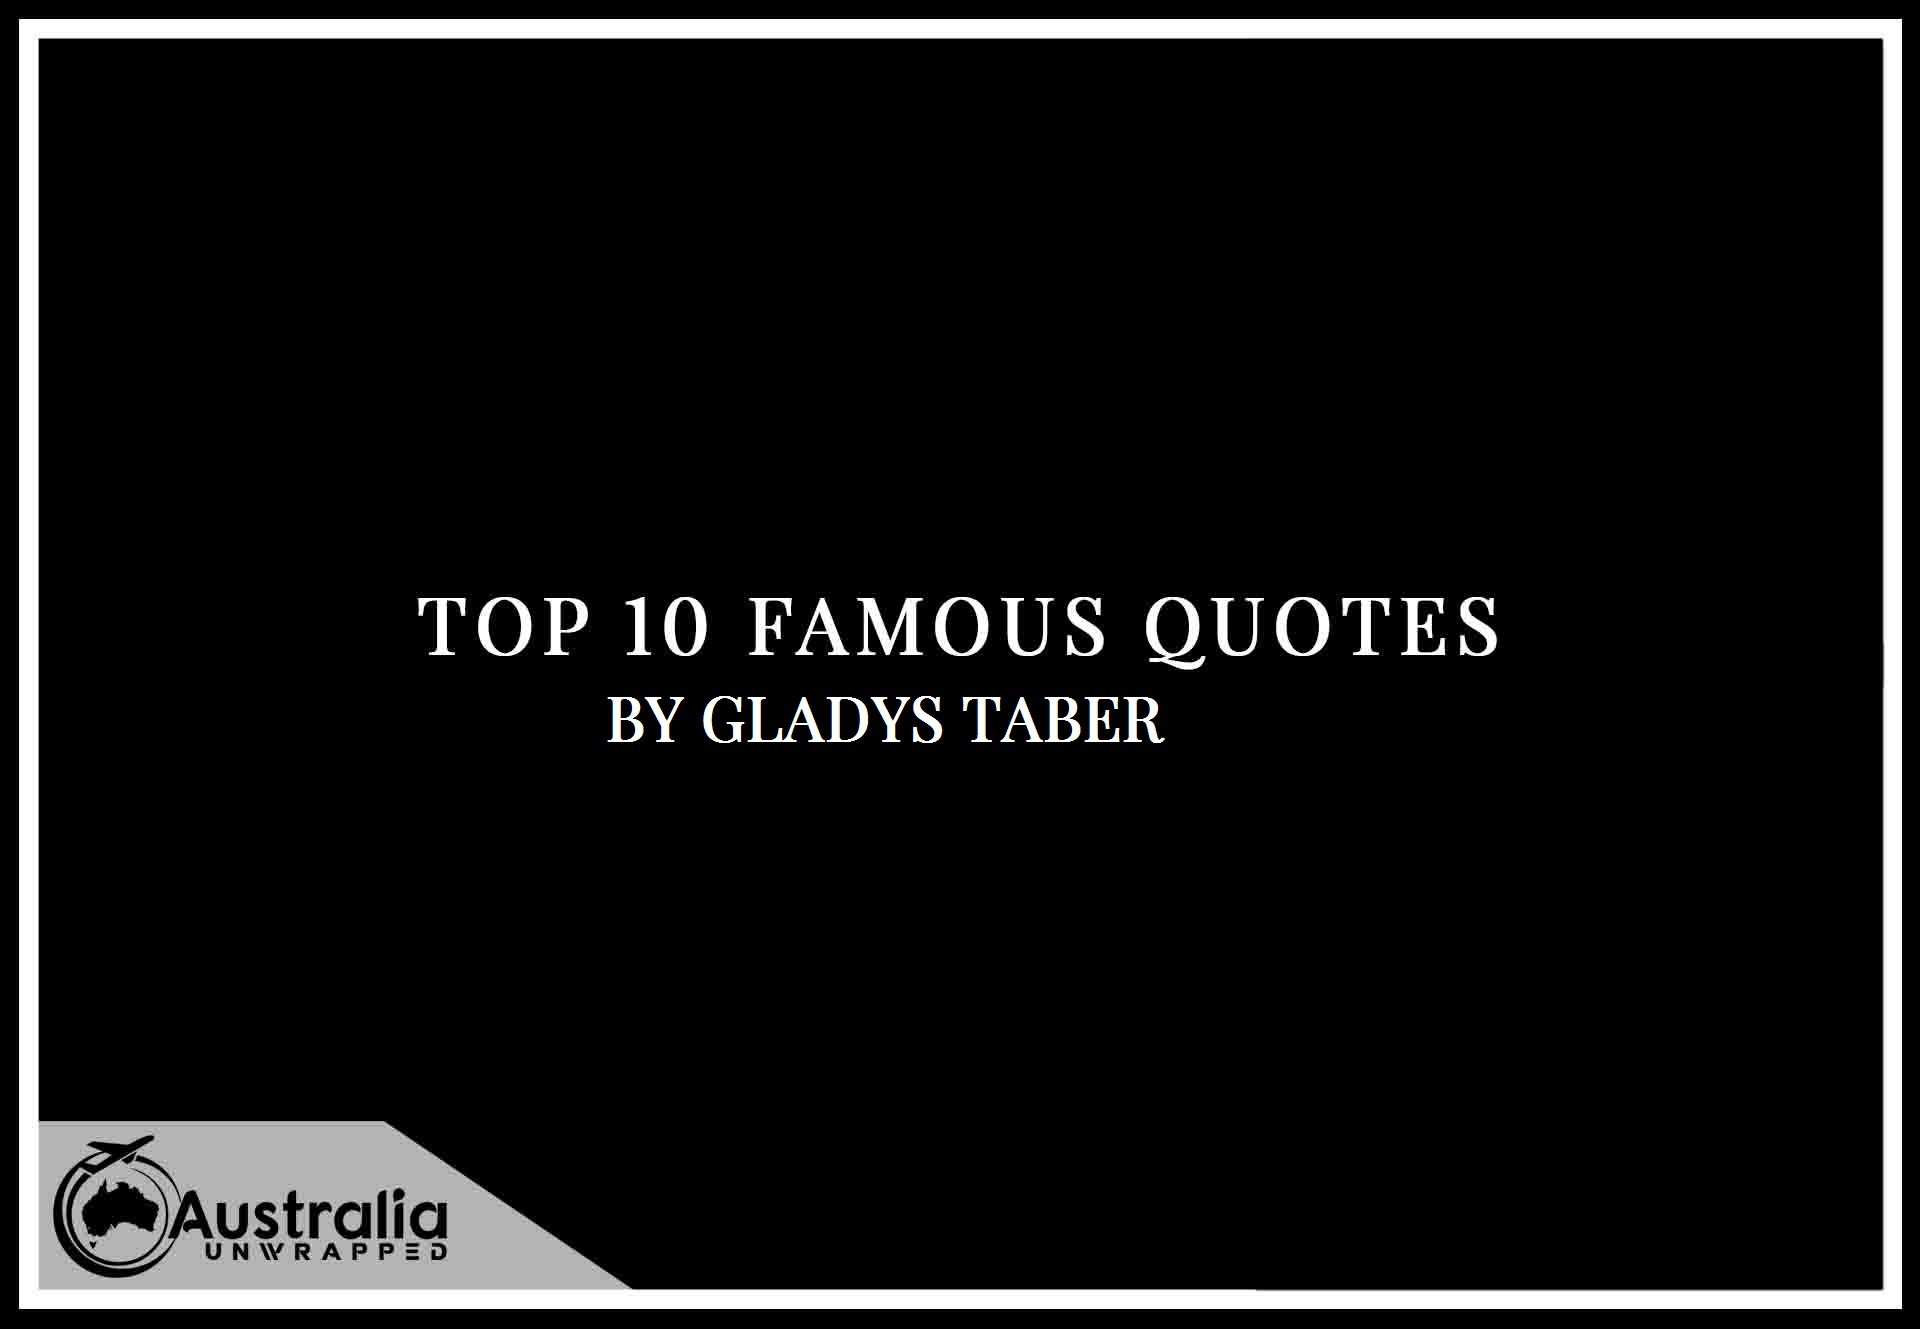 Gladys Bagg Taber's Top 10 Popular and Famous Quotes